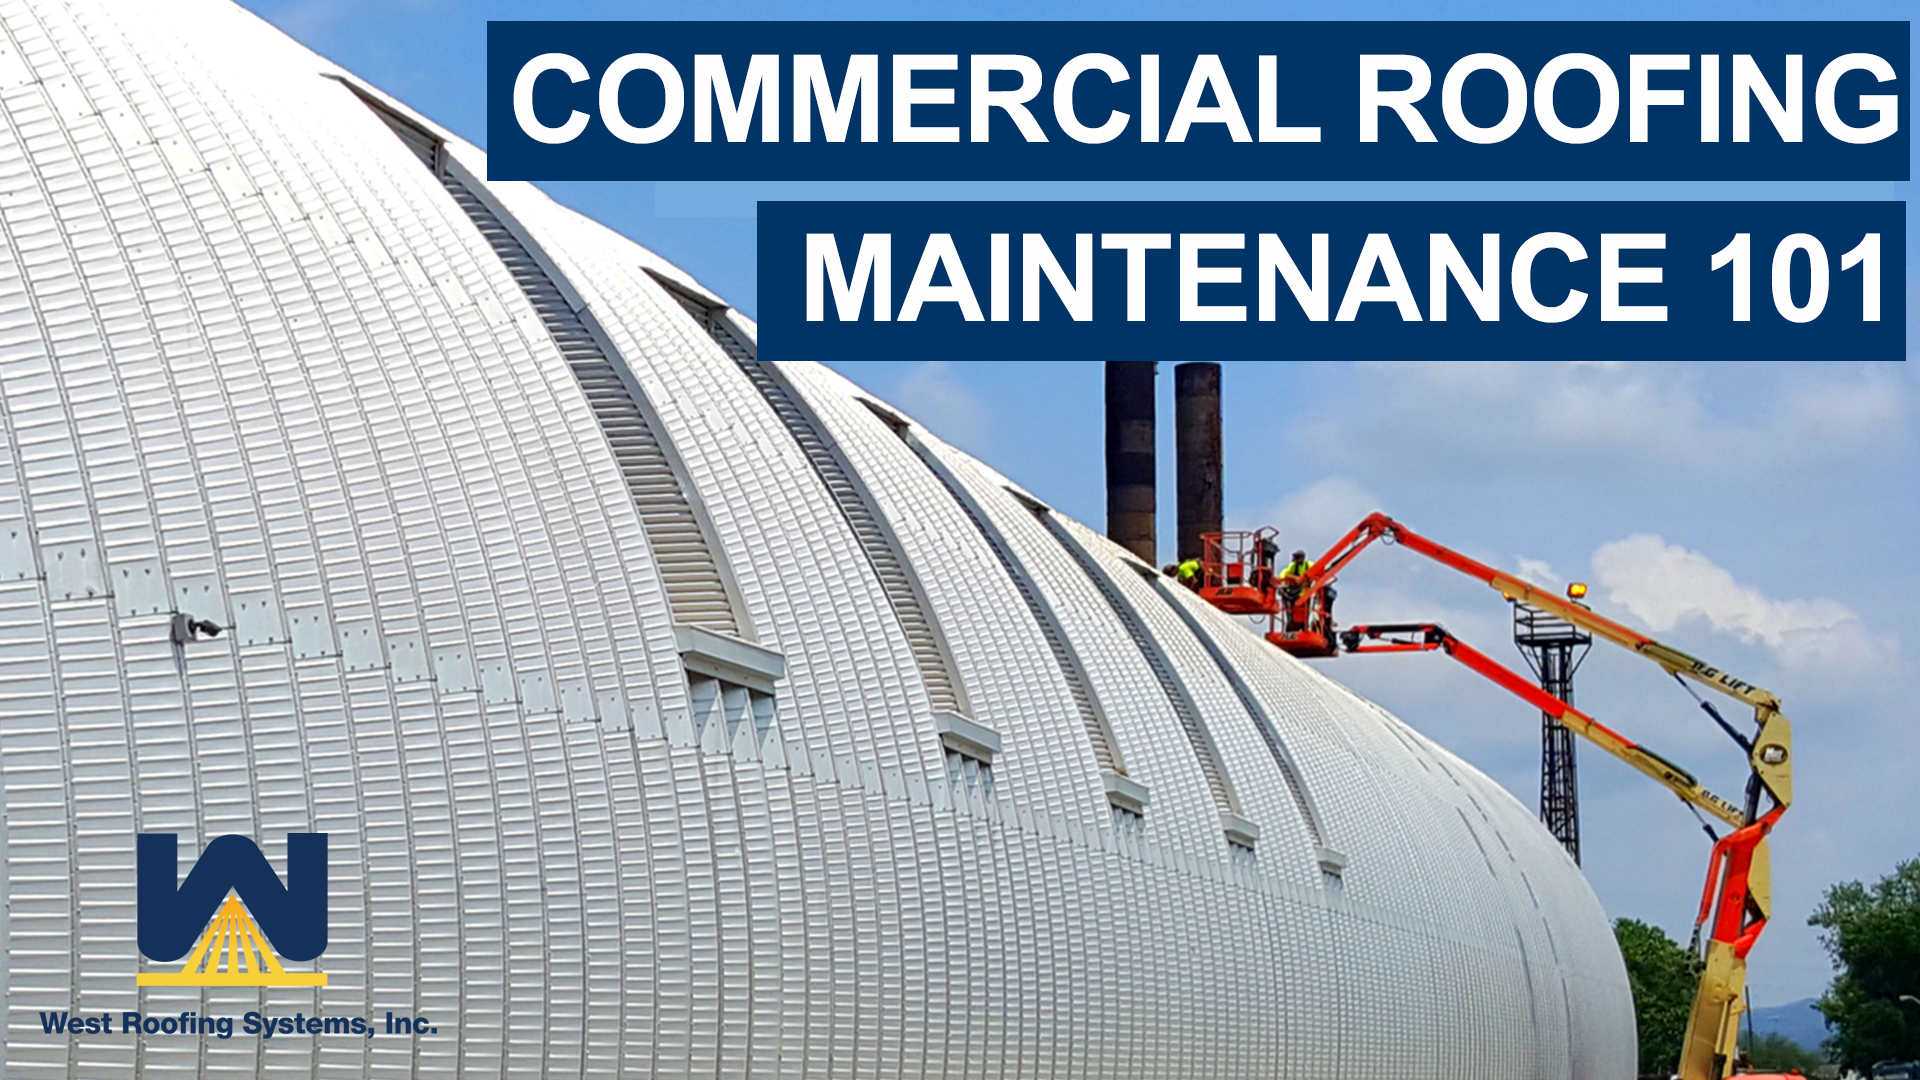 Commercial Roof Maintenance 101-671832-edited.png